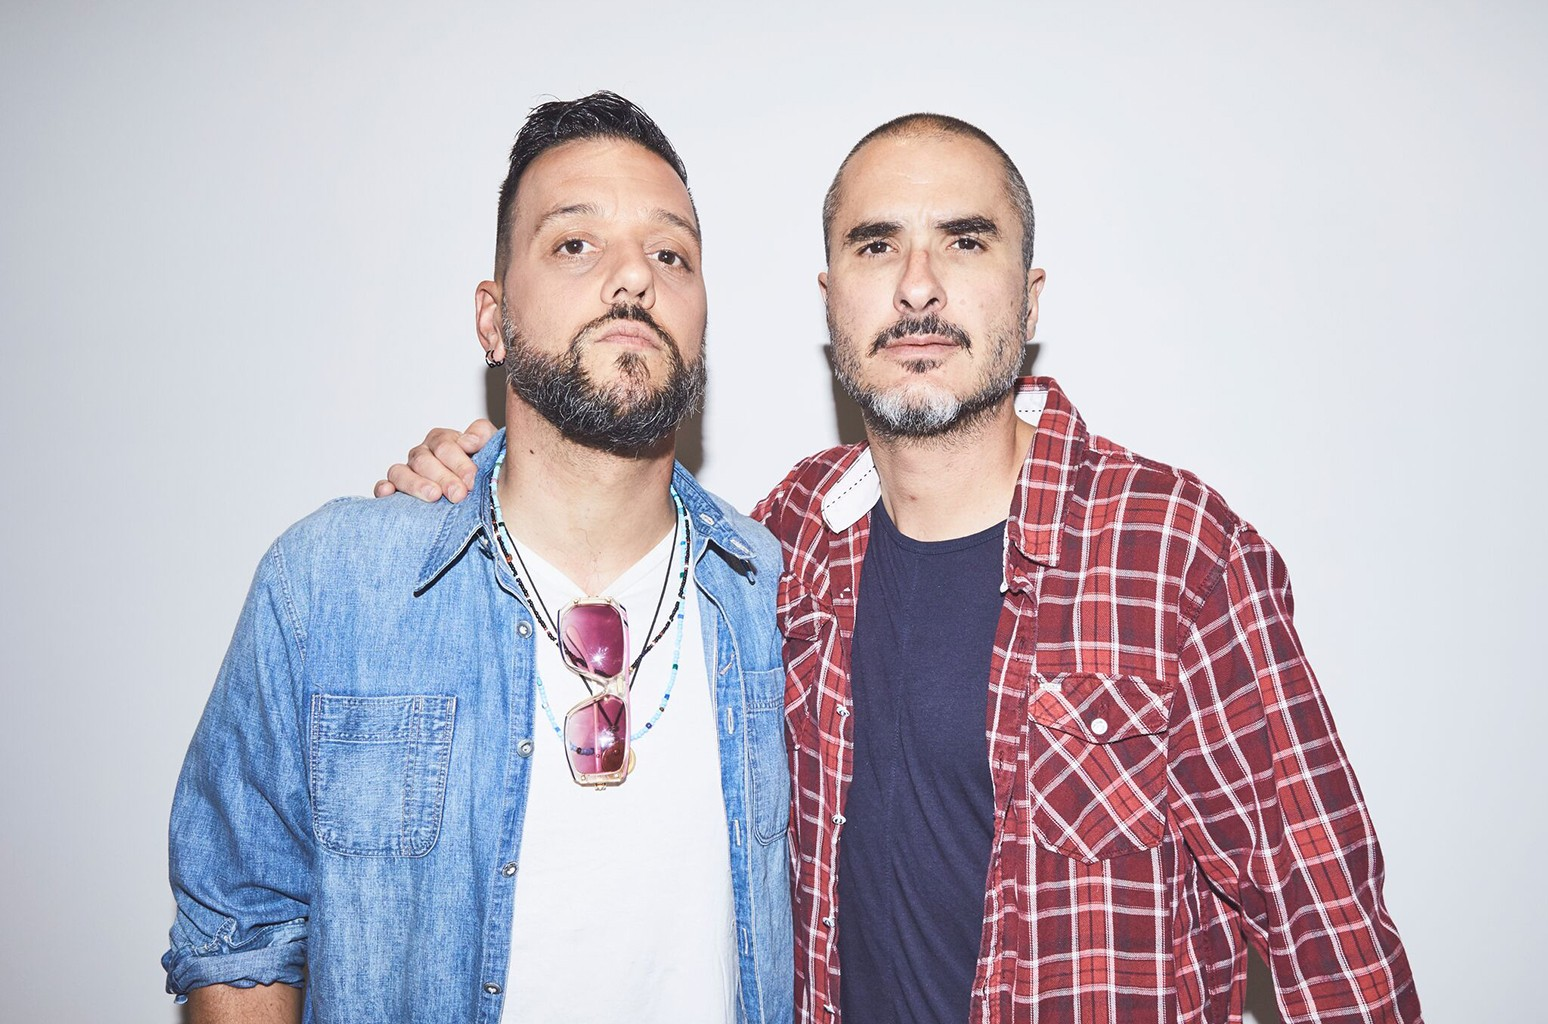 George Stroumboulopoulos and Zane Lowe